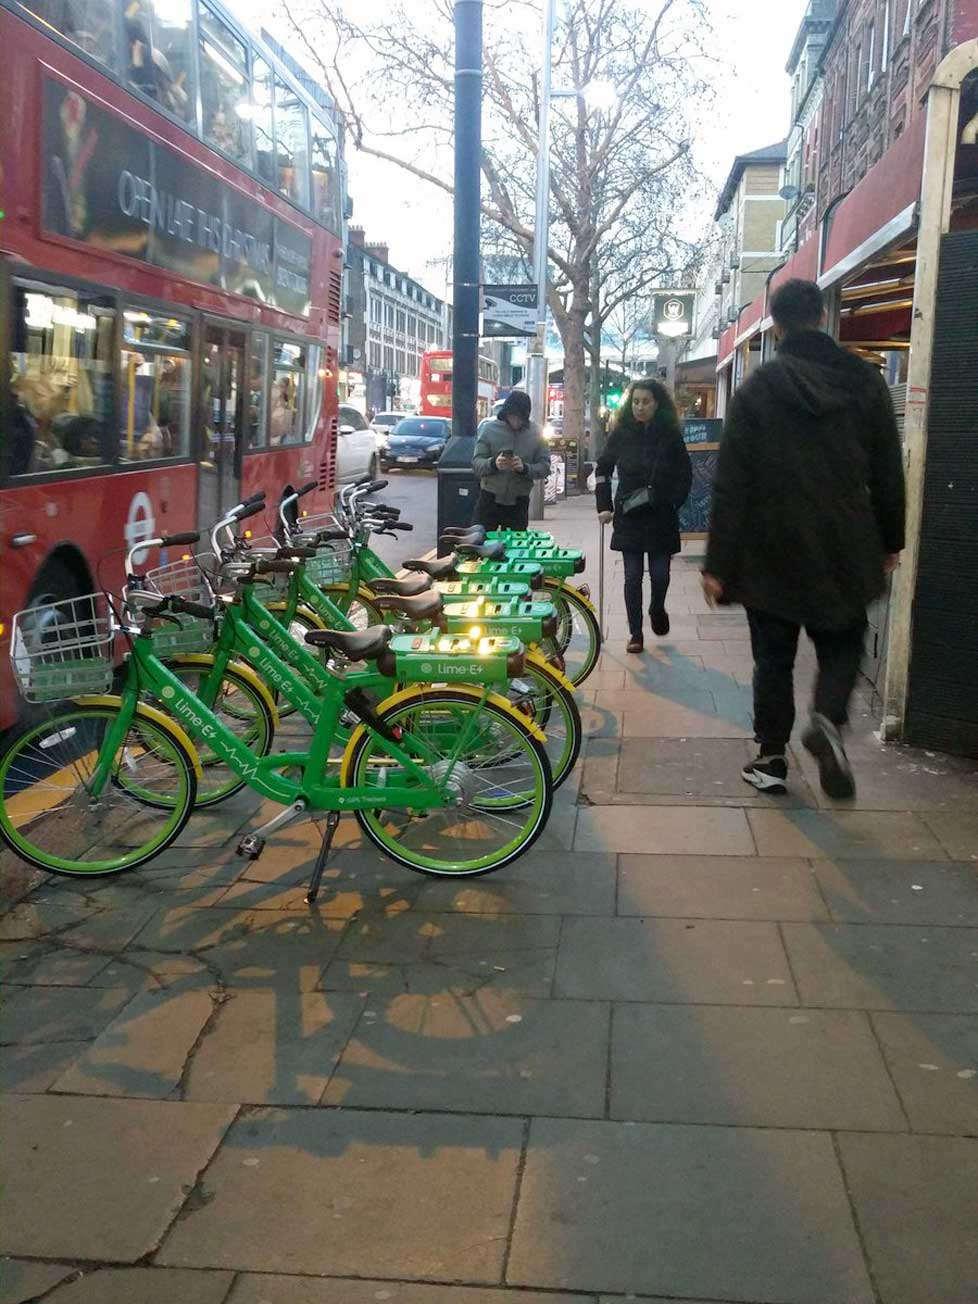 Row of LimeBikes on a pavement in kilburn, London